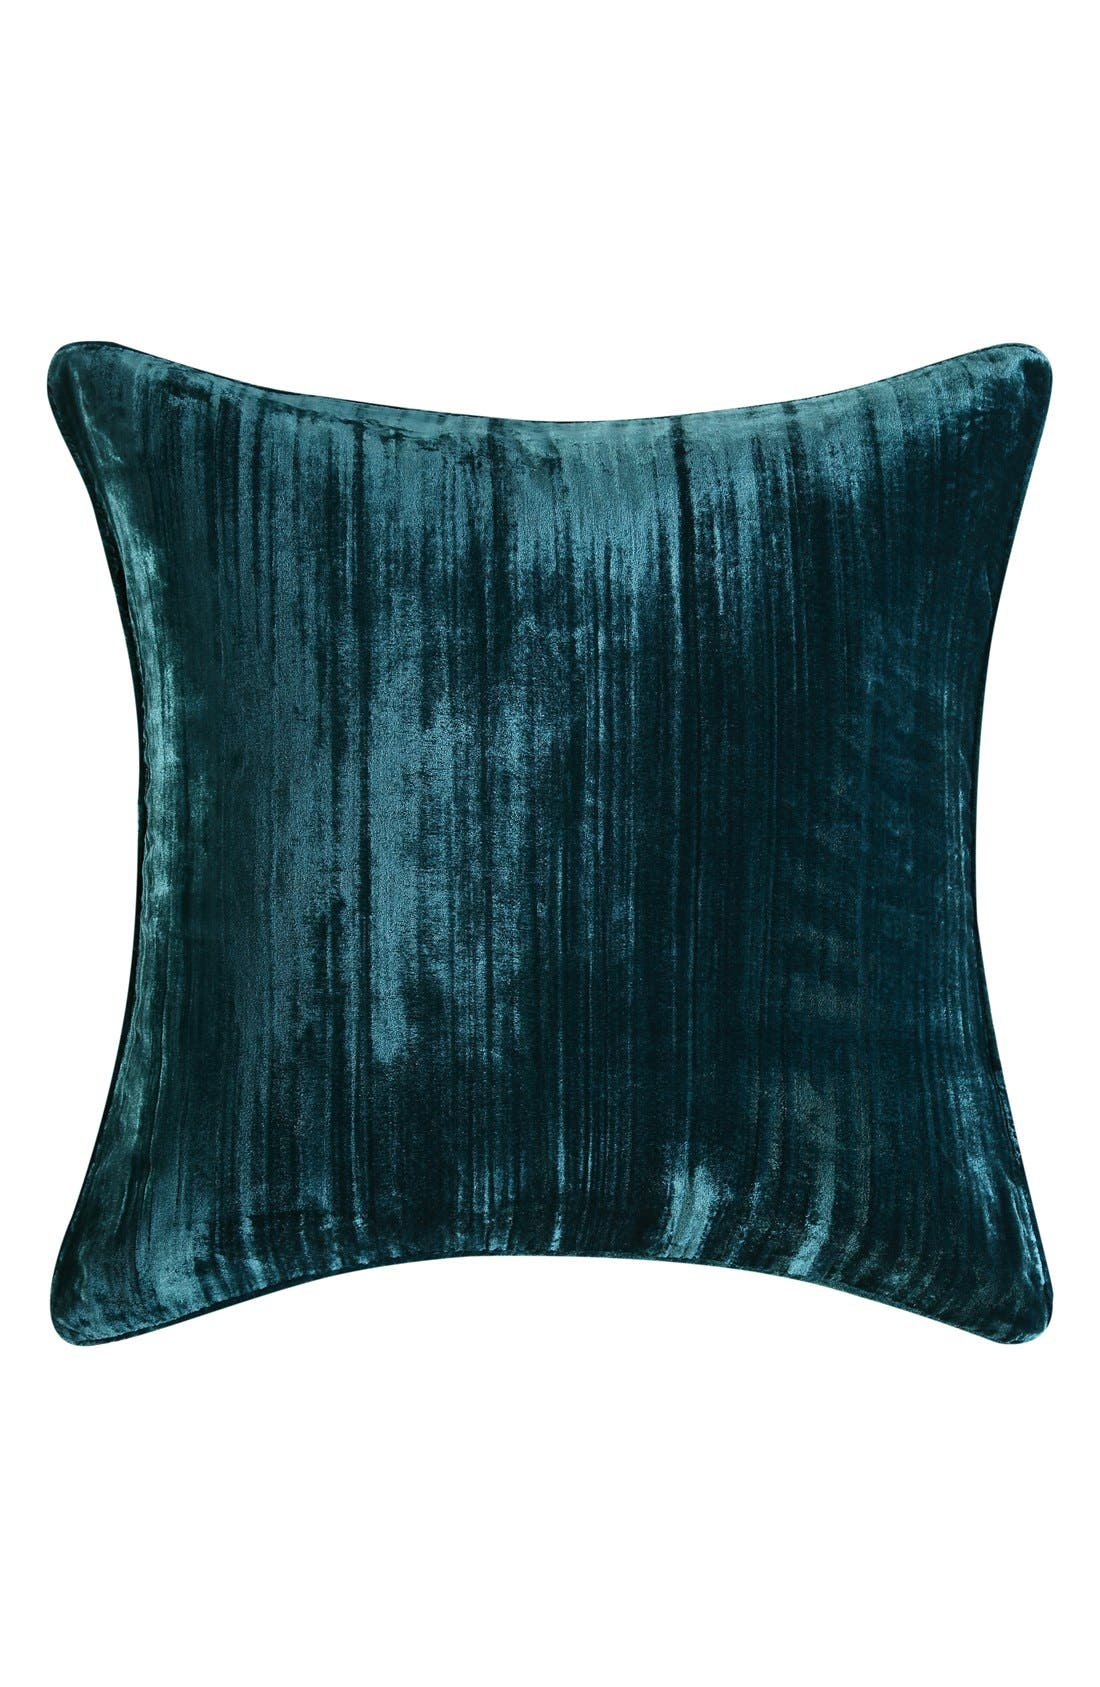 Alternate Image 1 Selected - Tracy Porter® For Poetic Wanderlust® 'Sisley' Velvet Pillow